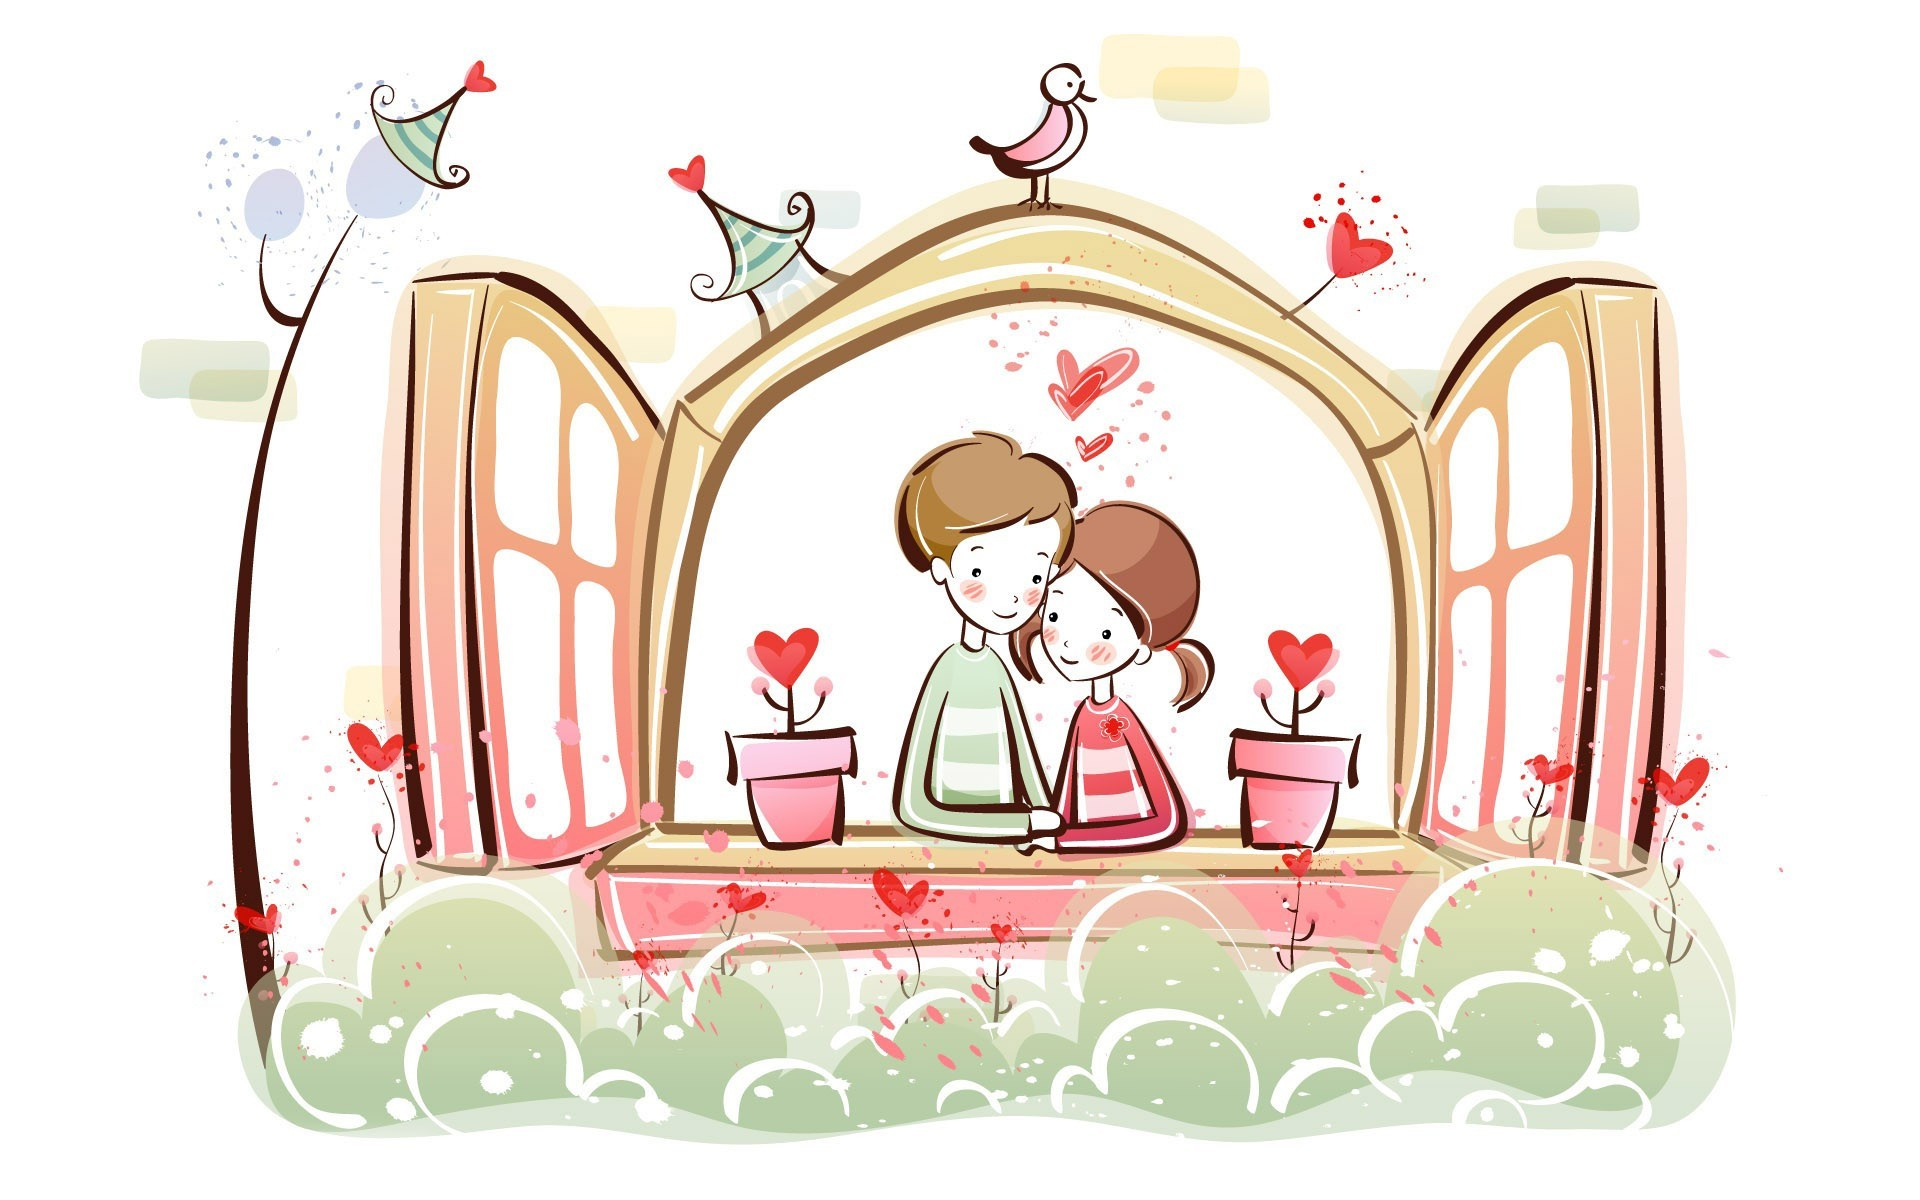 Love Kiss Wallpaper cartoon : cartoon Love Wallpaper - Wallpaper, High Definition, High Quality, Widescreen